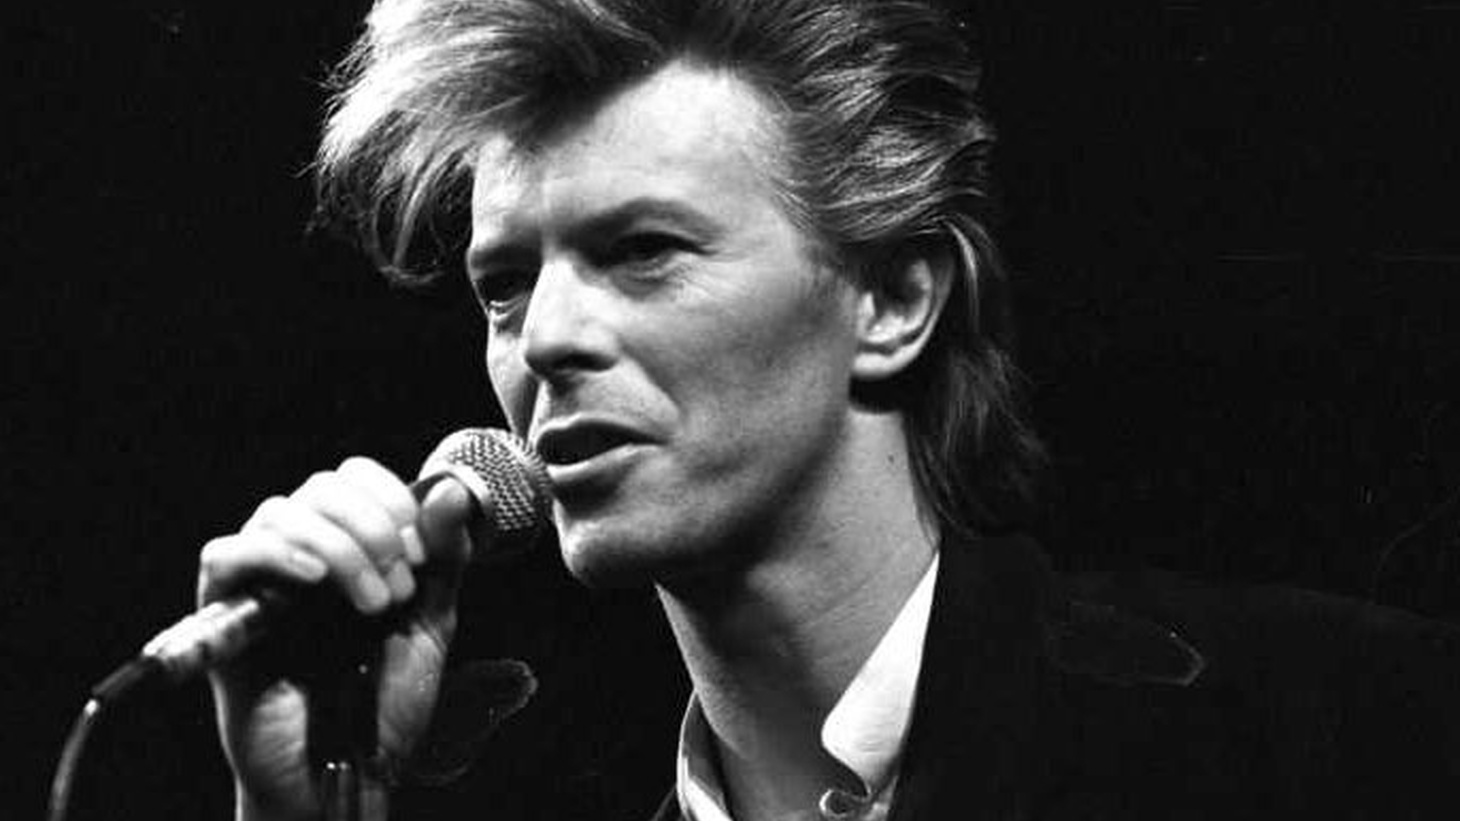 This show is all David Bowie as well as covers of his music. I'm not sure that I've ever loved doing a radio show more than I did this one and Sunday's. Music always tells the story better than I can in words.